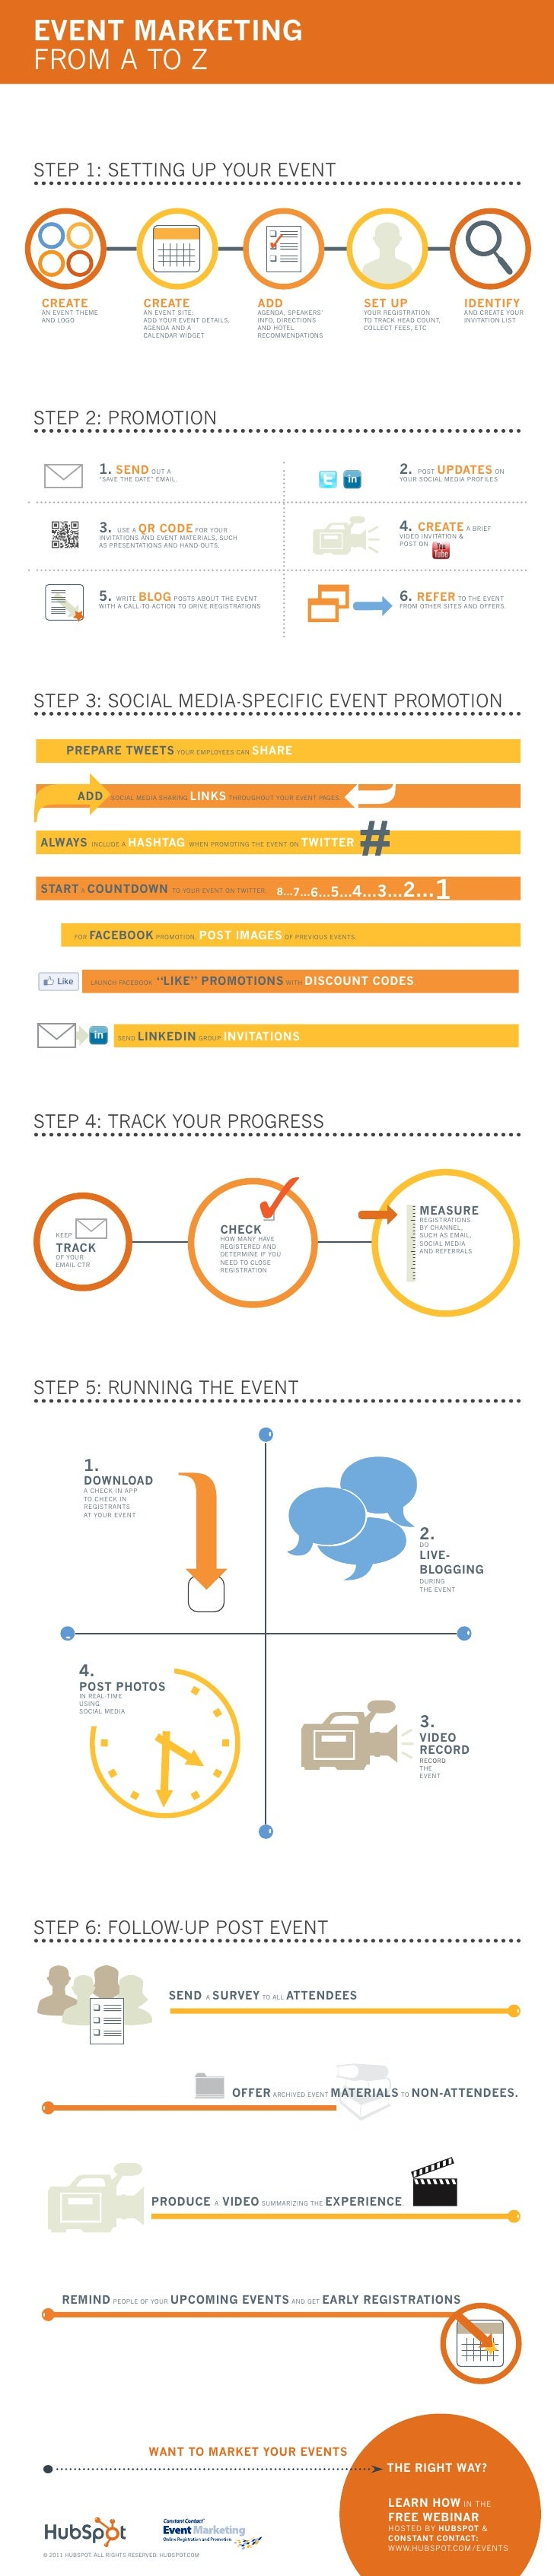 EVENT MARKETINGFROM A TO ZSTEP 1: SETTING UP YOUR EVENTCREATE                        CREATE                         ADD   ...